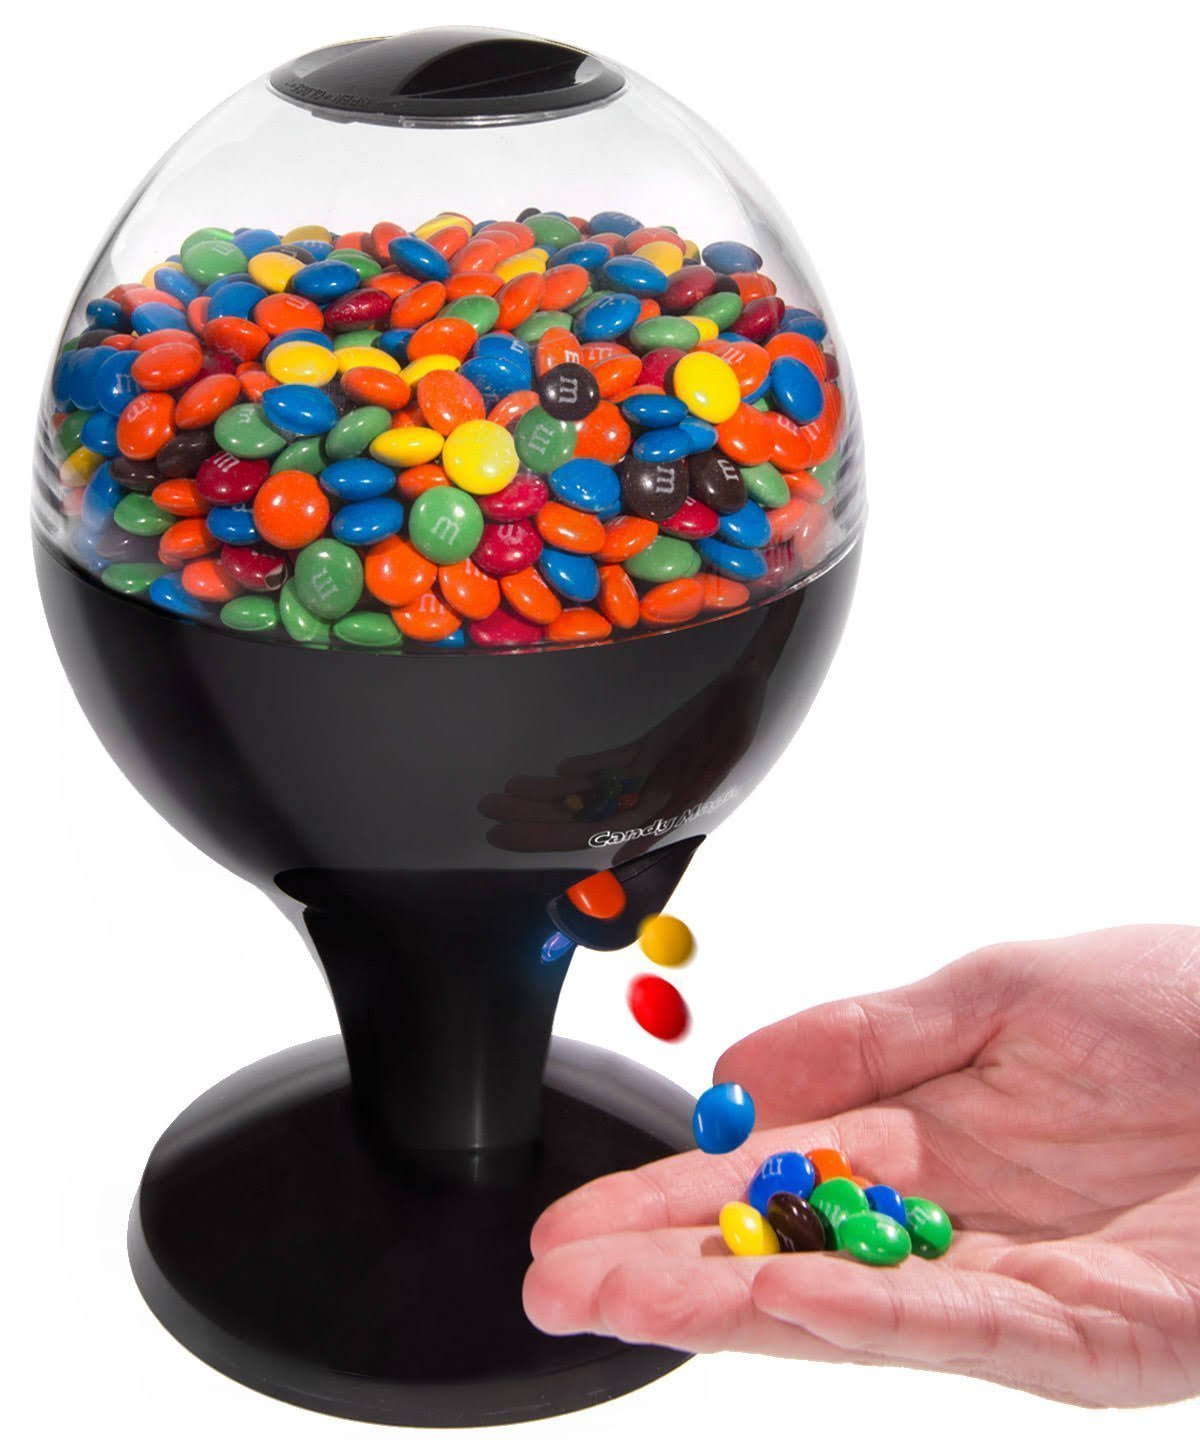 Motion Sensor Candy Dispenser